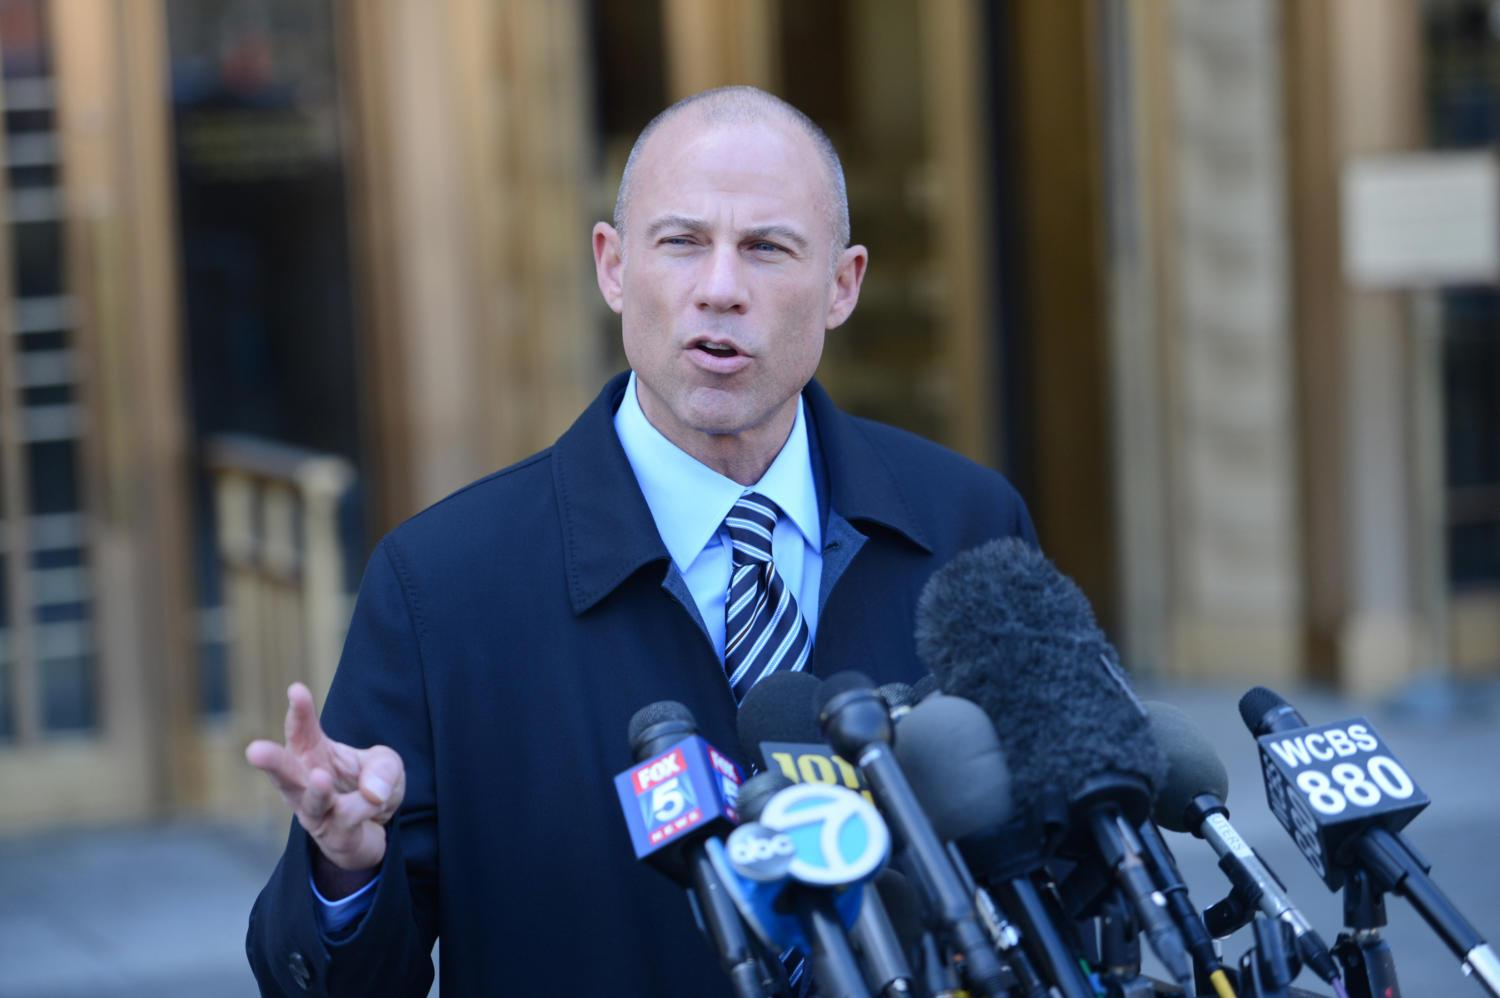 Stormy Daniels' attorney Michael Avenatti holds a press conference outside Federal Court after a hearing for Trump's attorney Michael Cohen at 500 Pearl Street in Manhattan on Thursday April 26, 2018. (Susan Watts/New York Daily News/TNS)